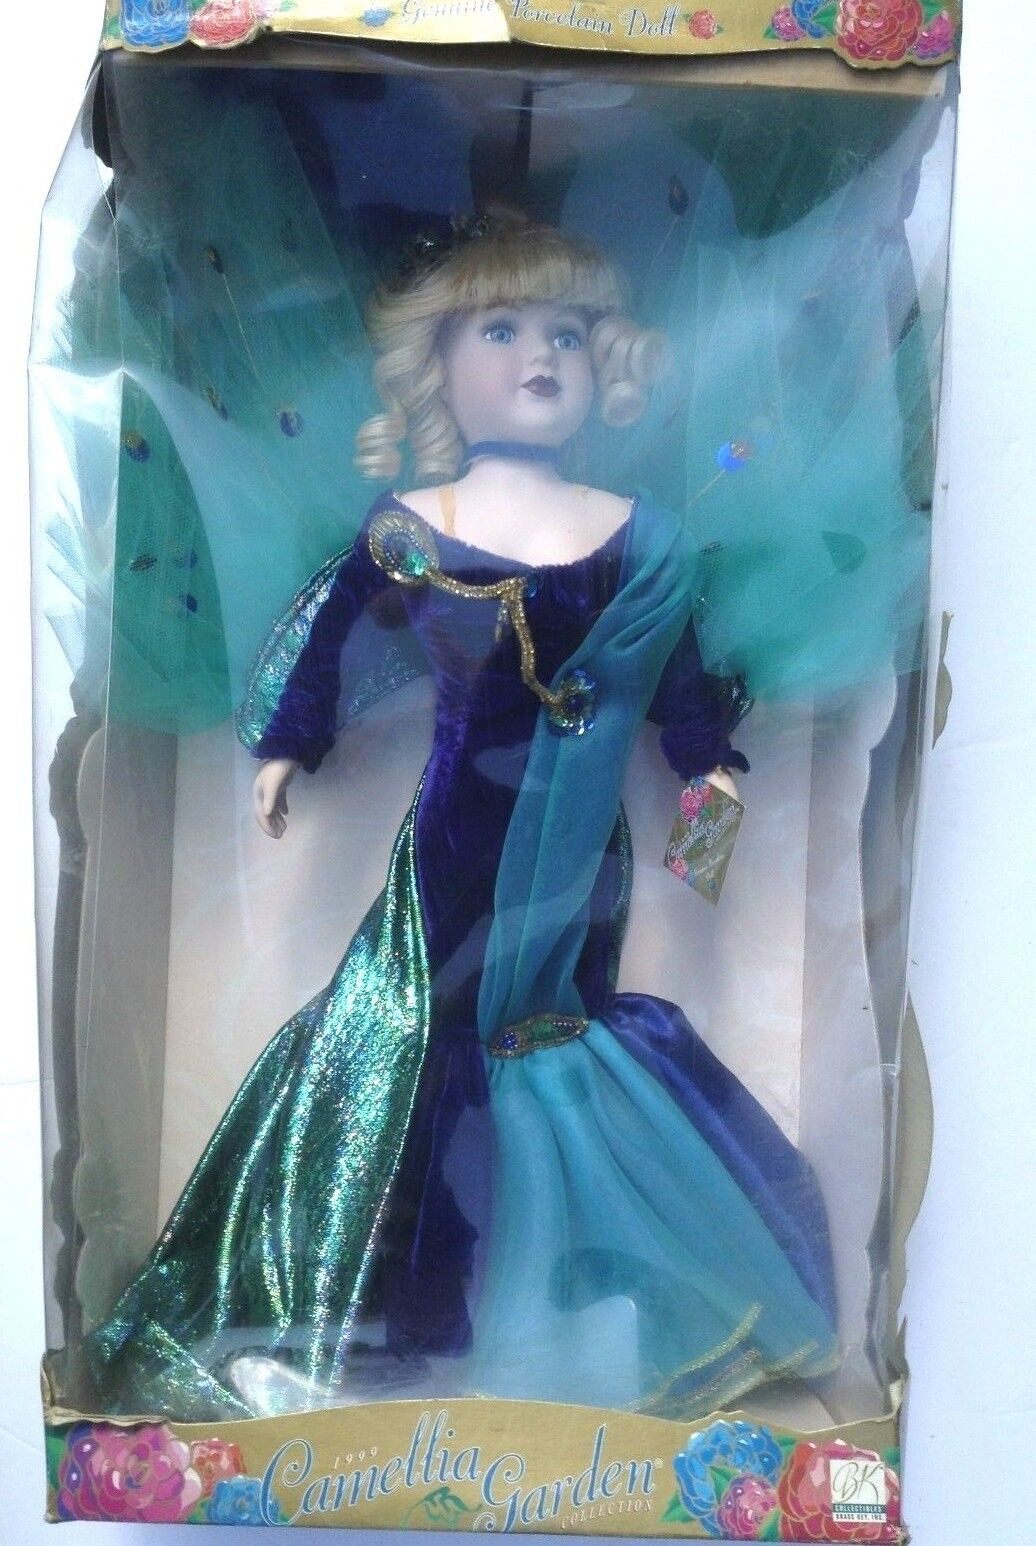 COLLECTIBLE CAMELLIA GARDEN PORCELAIN DOLL 18  1997 W/STAND & BOX